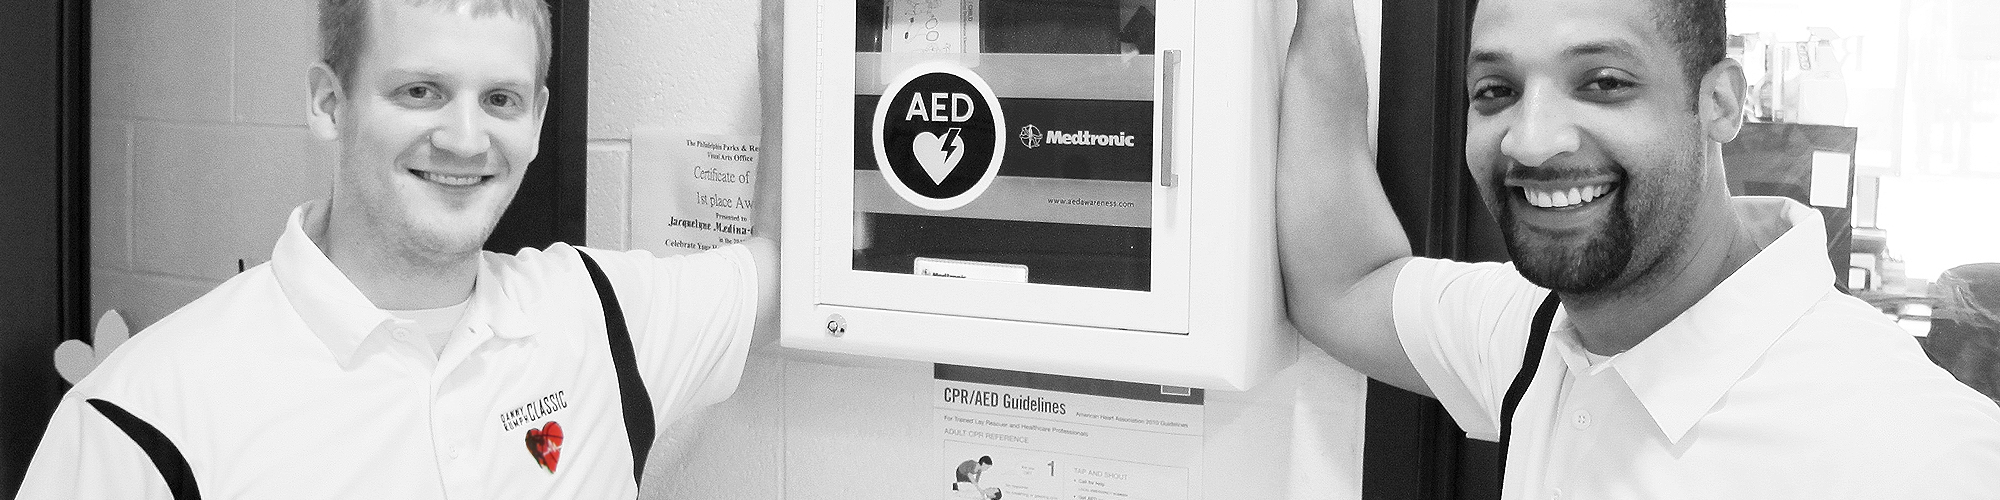 Committed to Increasing Awareness of Sudden Cardiac Arrest Among Youth